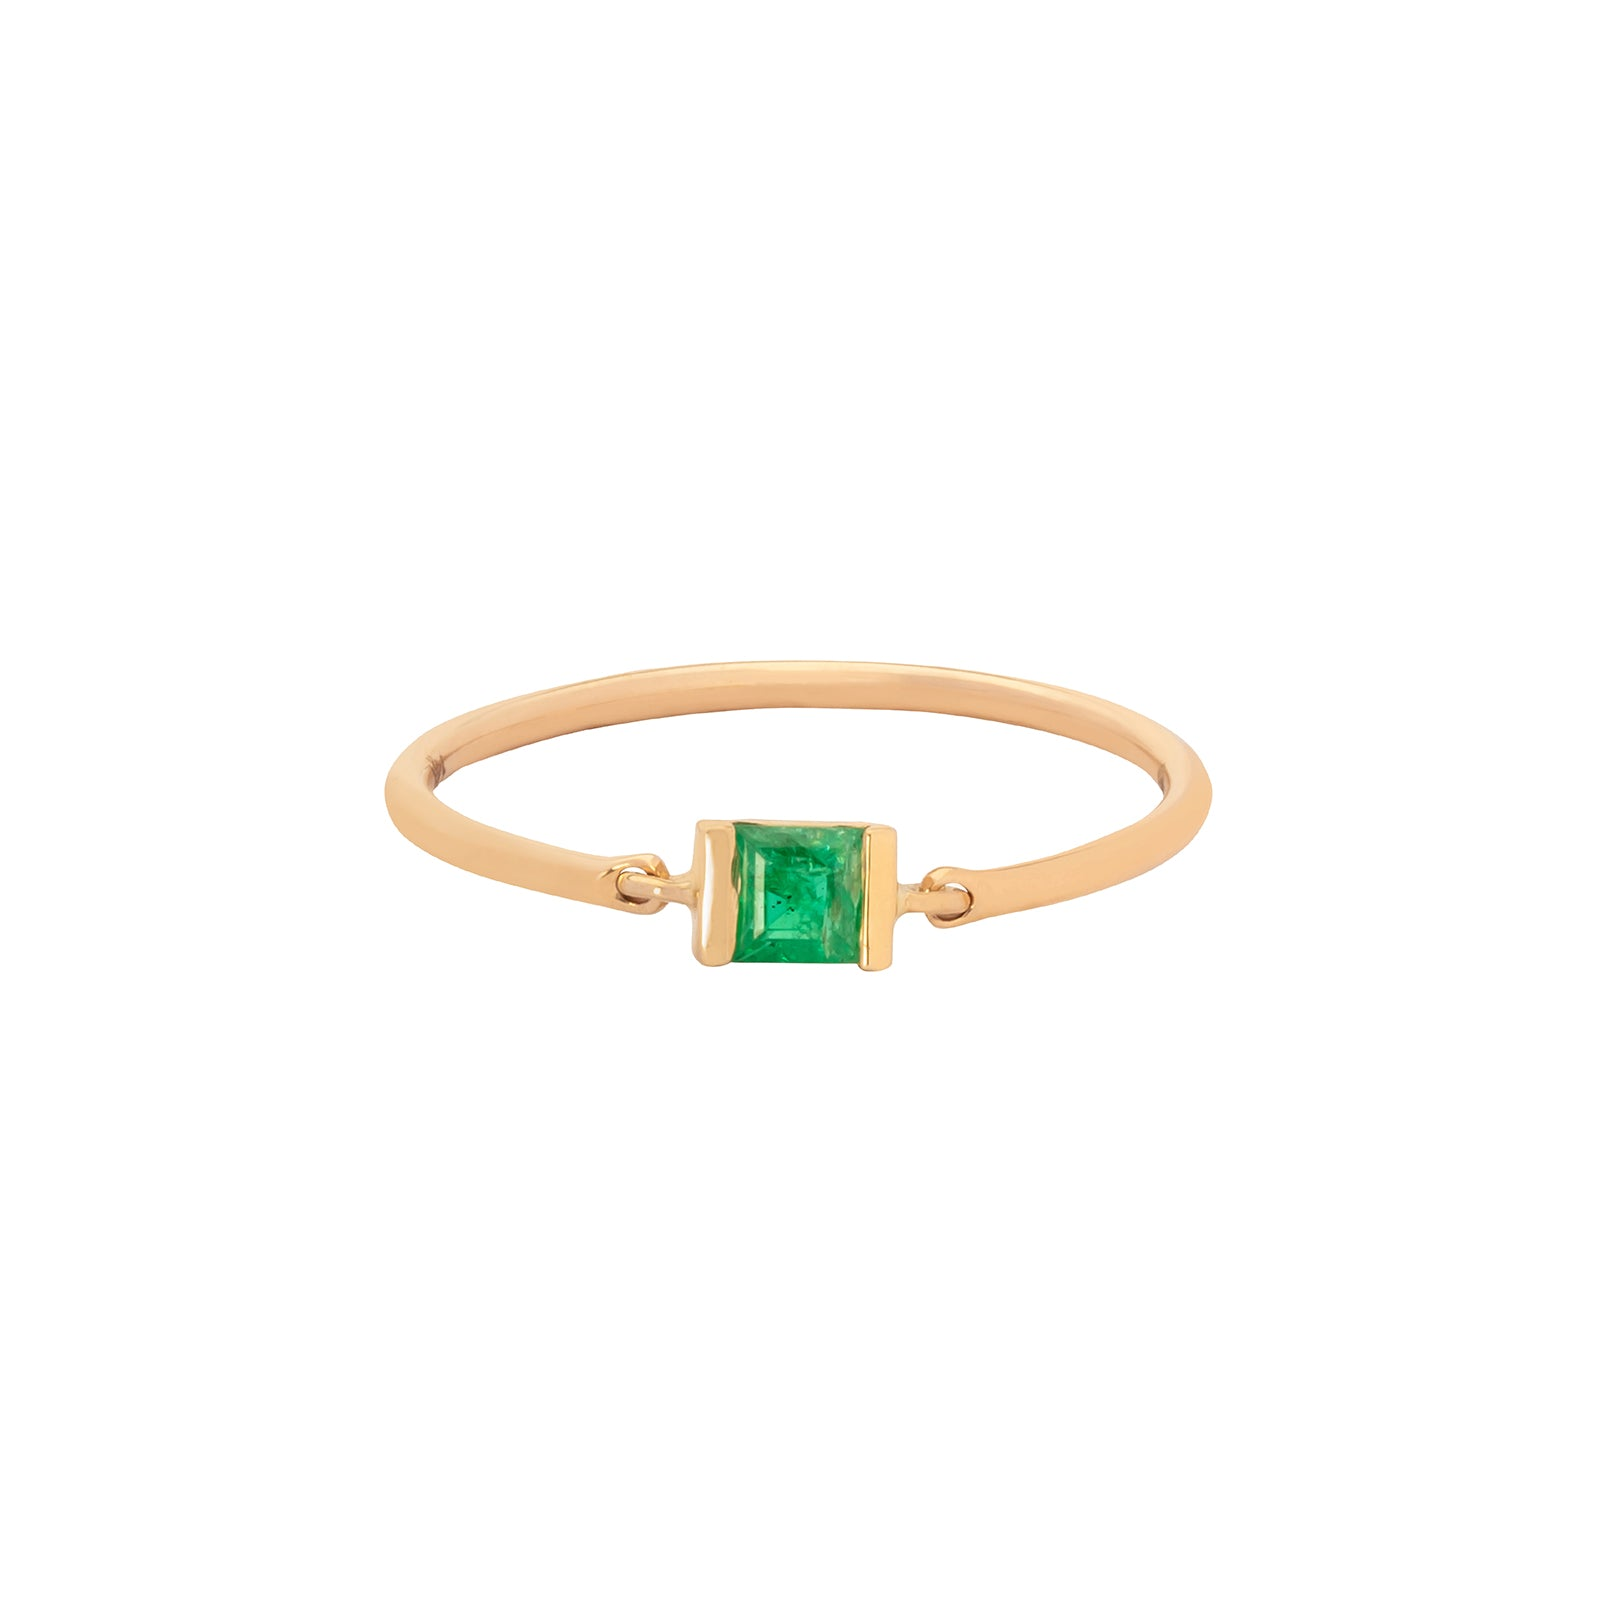 Emerald Petite Circle Ring - YI Collection - Rings | Broken English Jewelry